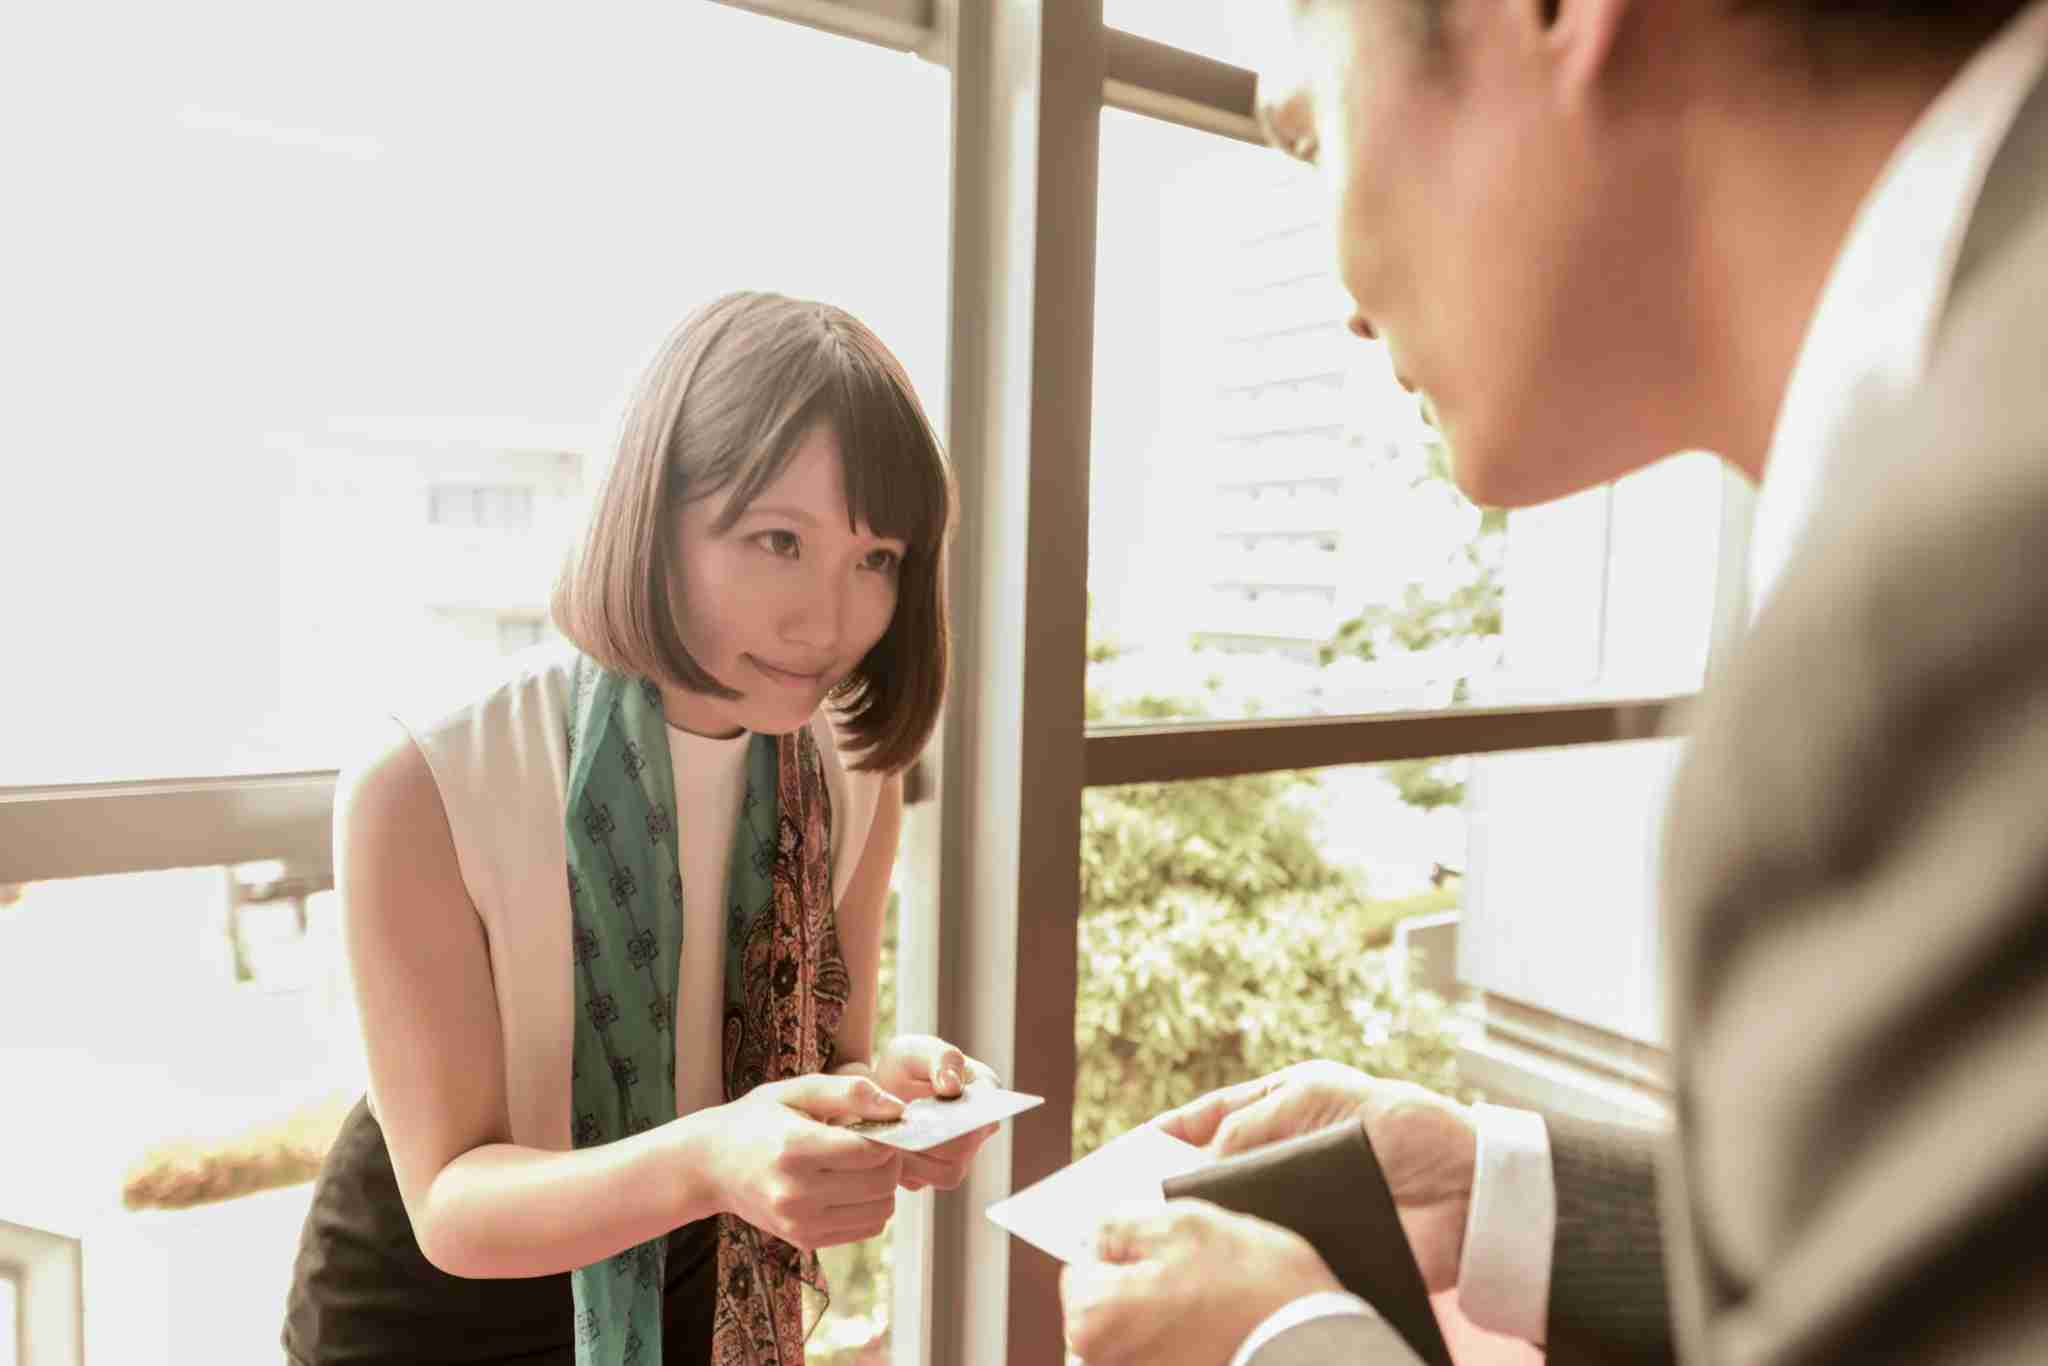 And always use both hands when exchanging business cards in Japan. Image courtesy of Johnny Greig via Getty Images.